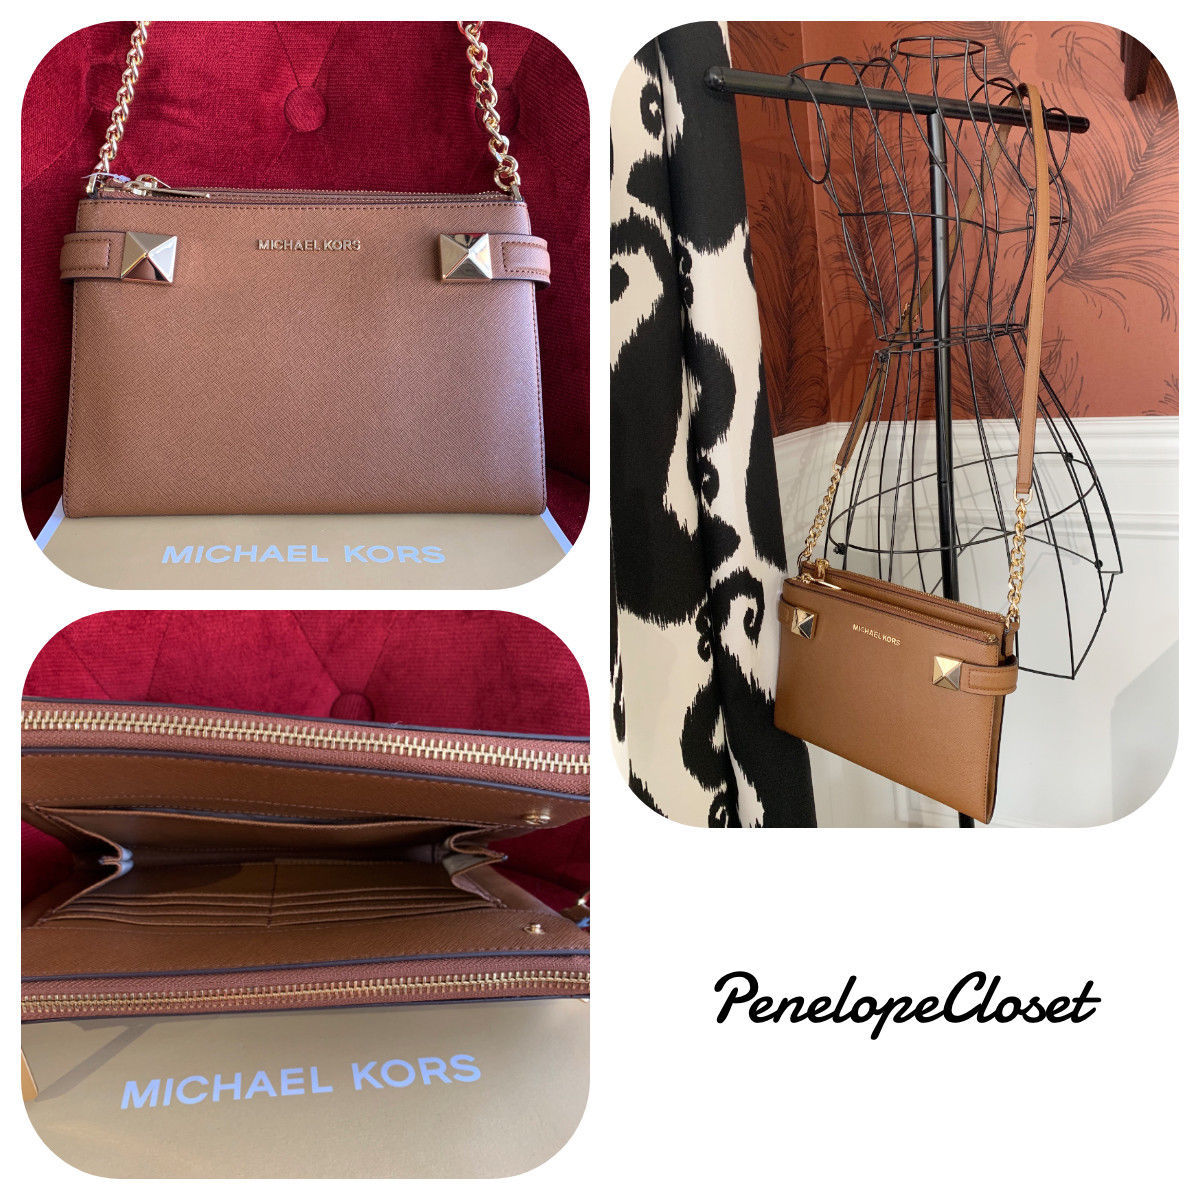 628fd3e0f2f2 Nwt Michael Kors Saffiano Leather Karla East and 50 similar items. 57